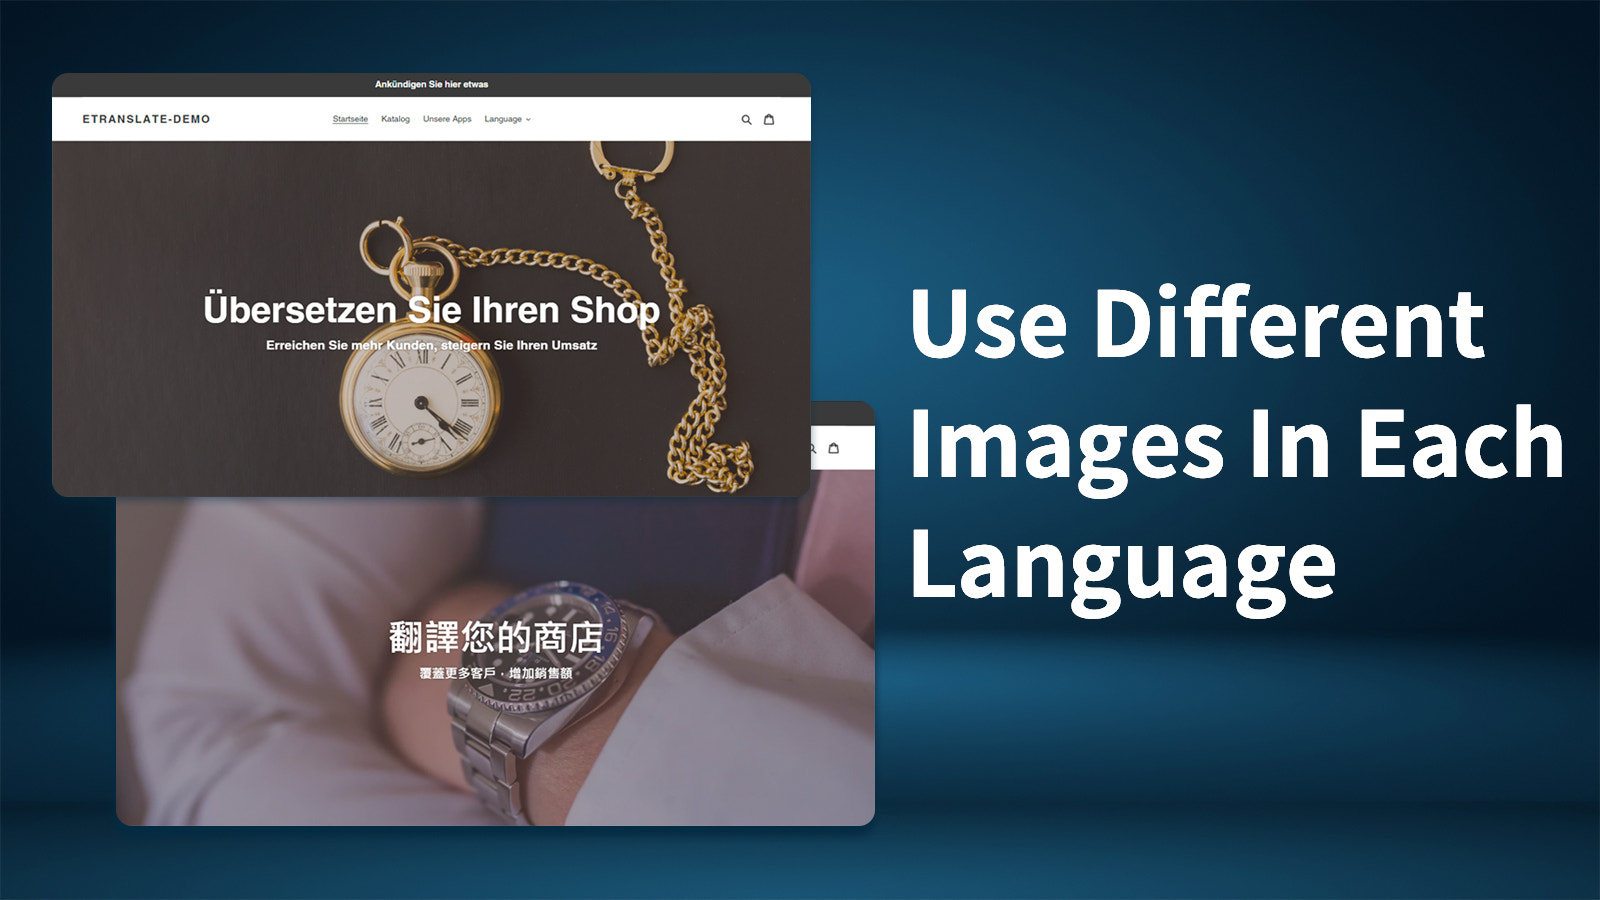 Use different images in each language